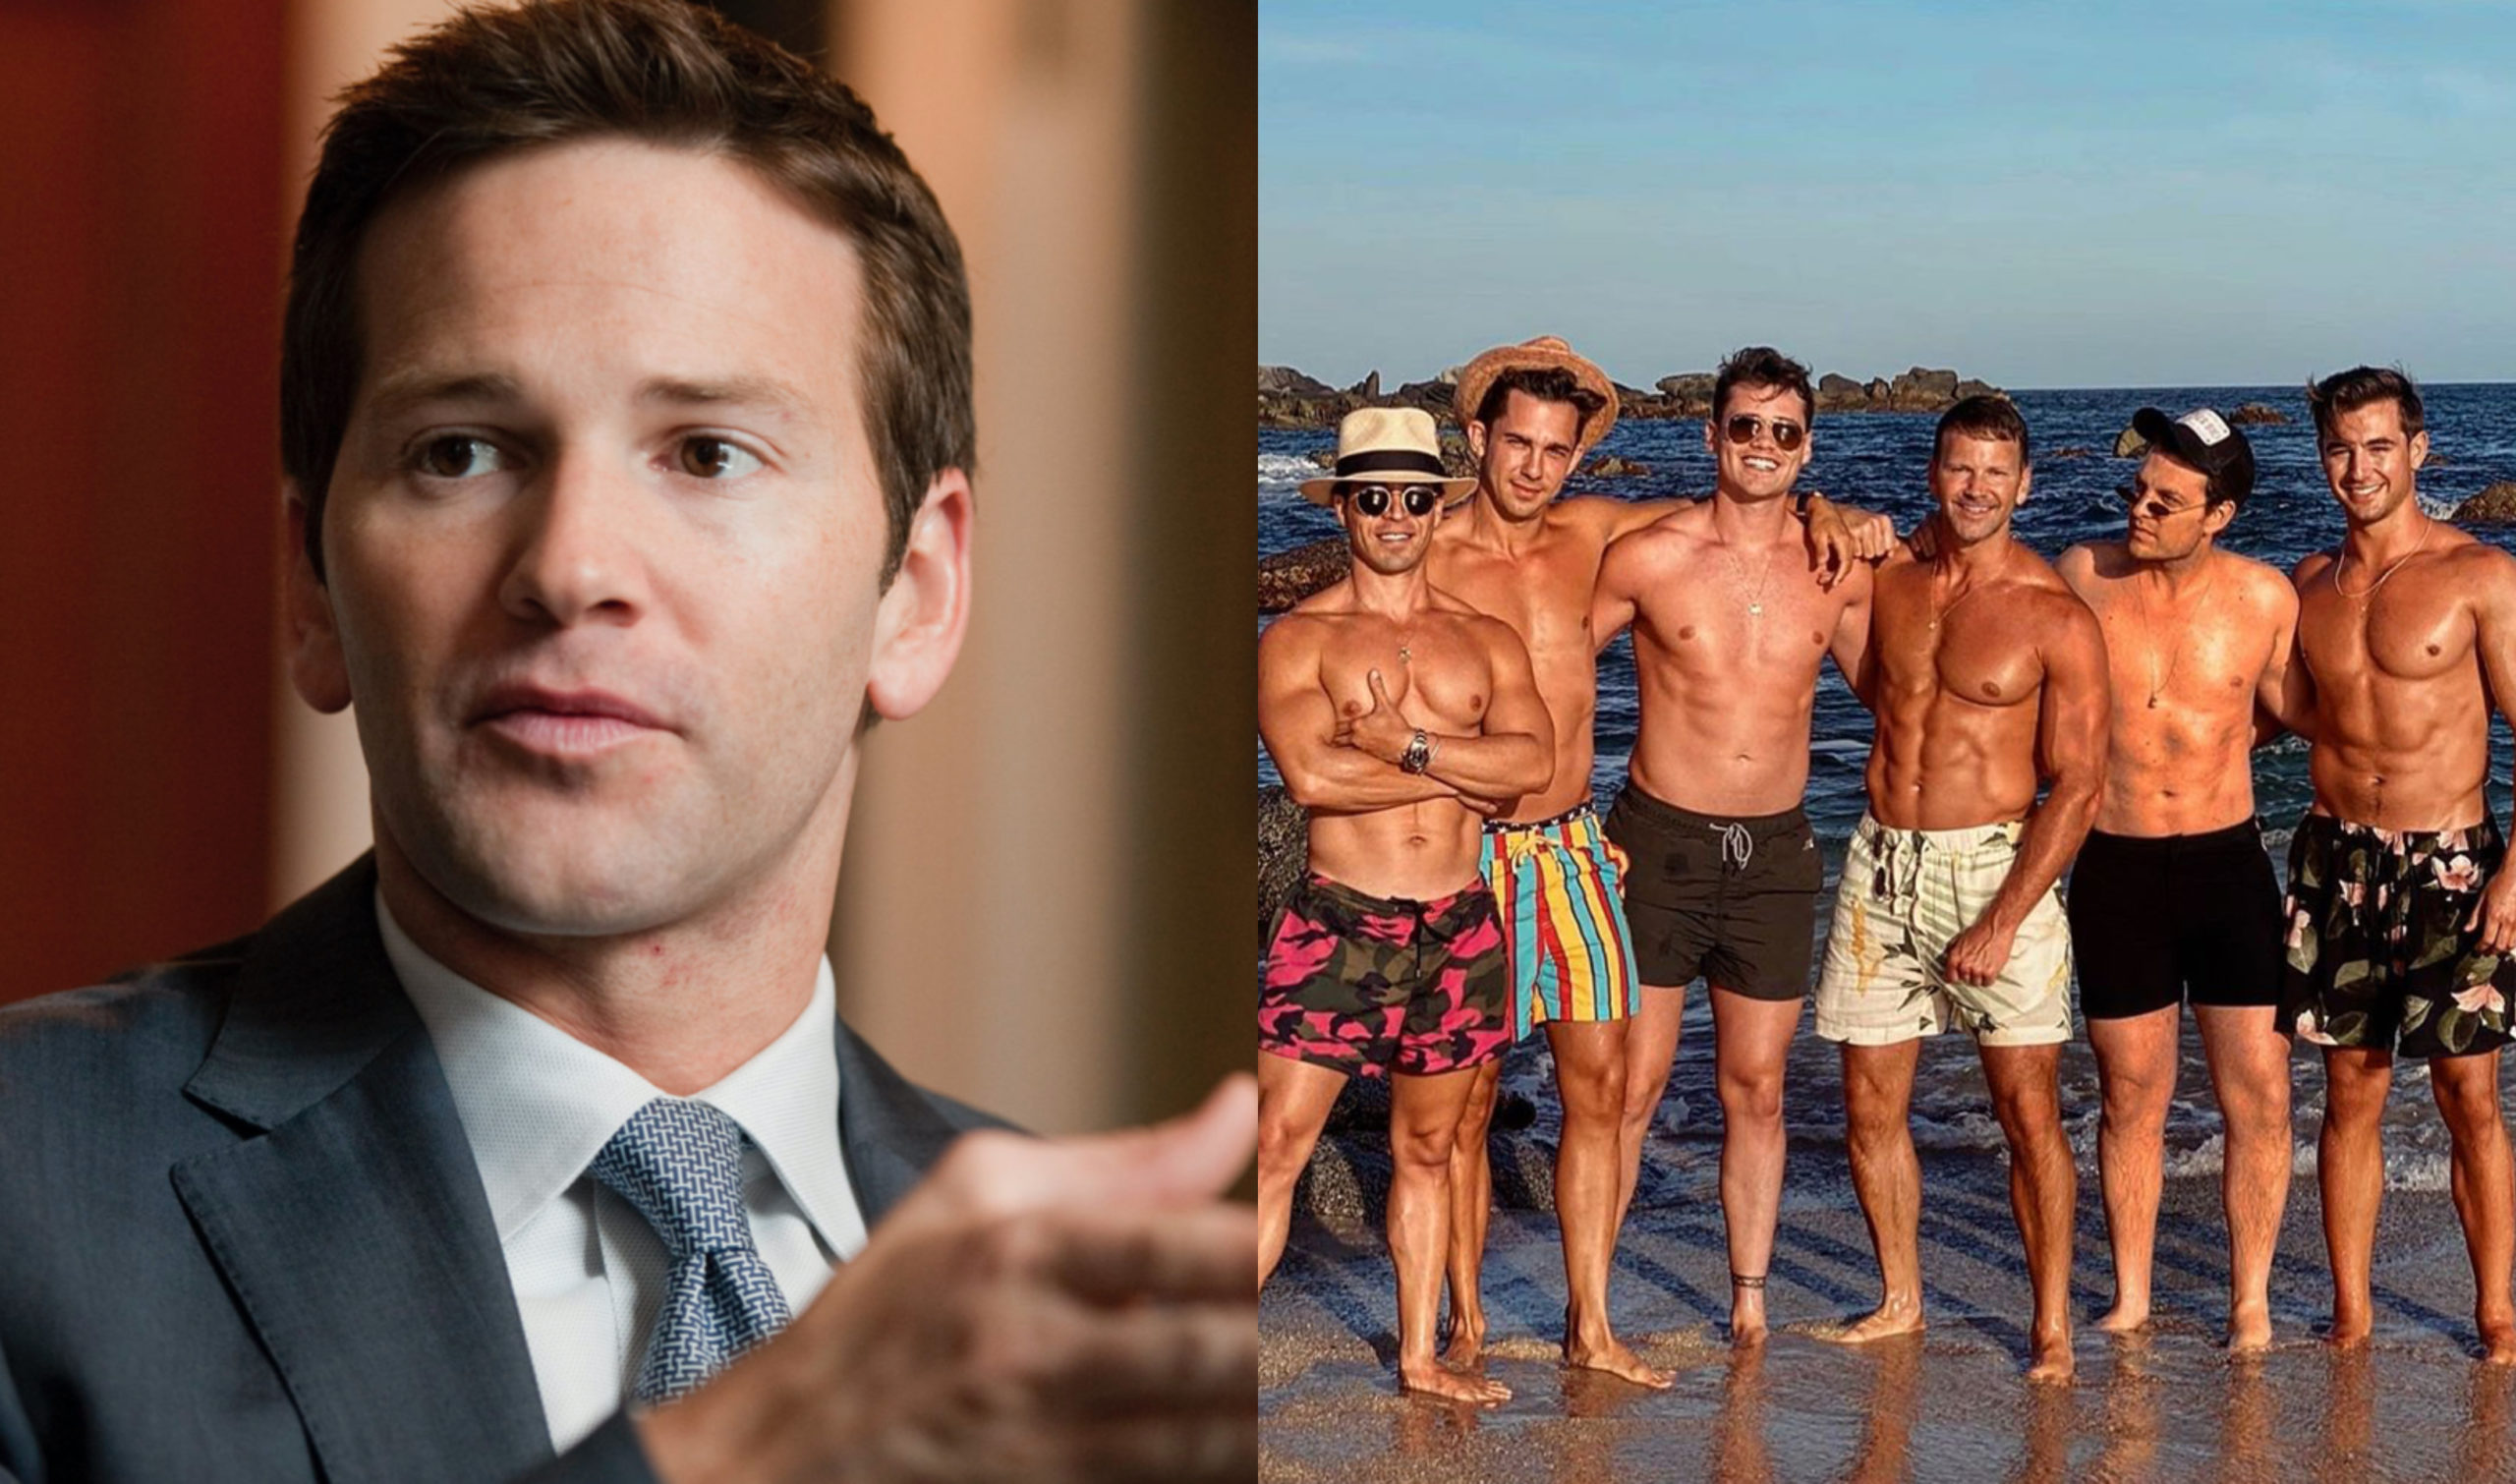 Aaron Schock, once rising star of the Republican Party, was pictured at a Mexican resort town, prompting outrage from LGBT+ community leaders. (Tom Williams/CQ Roll Call via Getty Images/ Instagram)